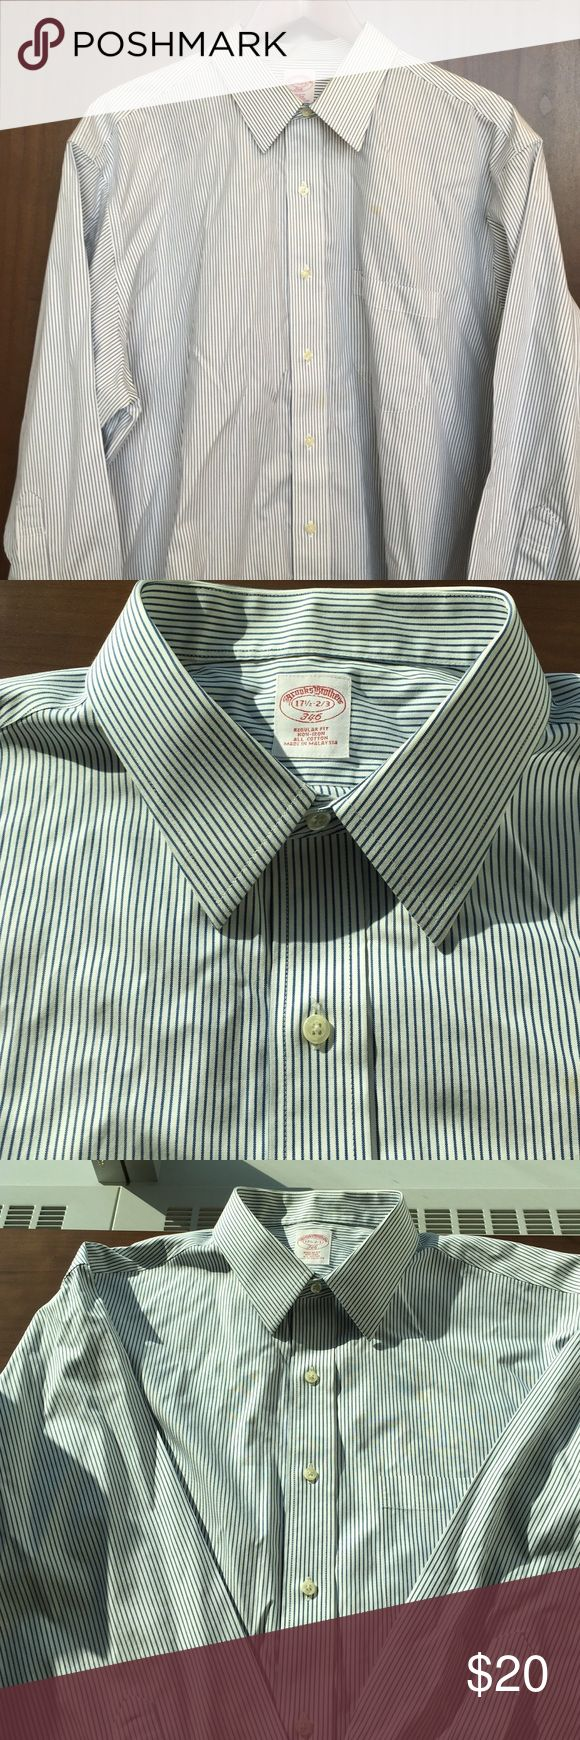 Brooks Brothers Non Iron Dress Shirt! The gold standard in dress shirts! This non iron traditional cut shirt is well made and easy to take care of. Machine watchable and non iron. Small stain above front pocket. From a pet and smoke free home! Brooks Brothers Shirts Dress Shirts